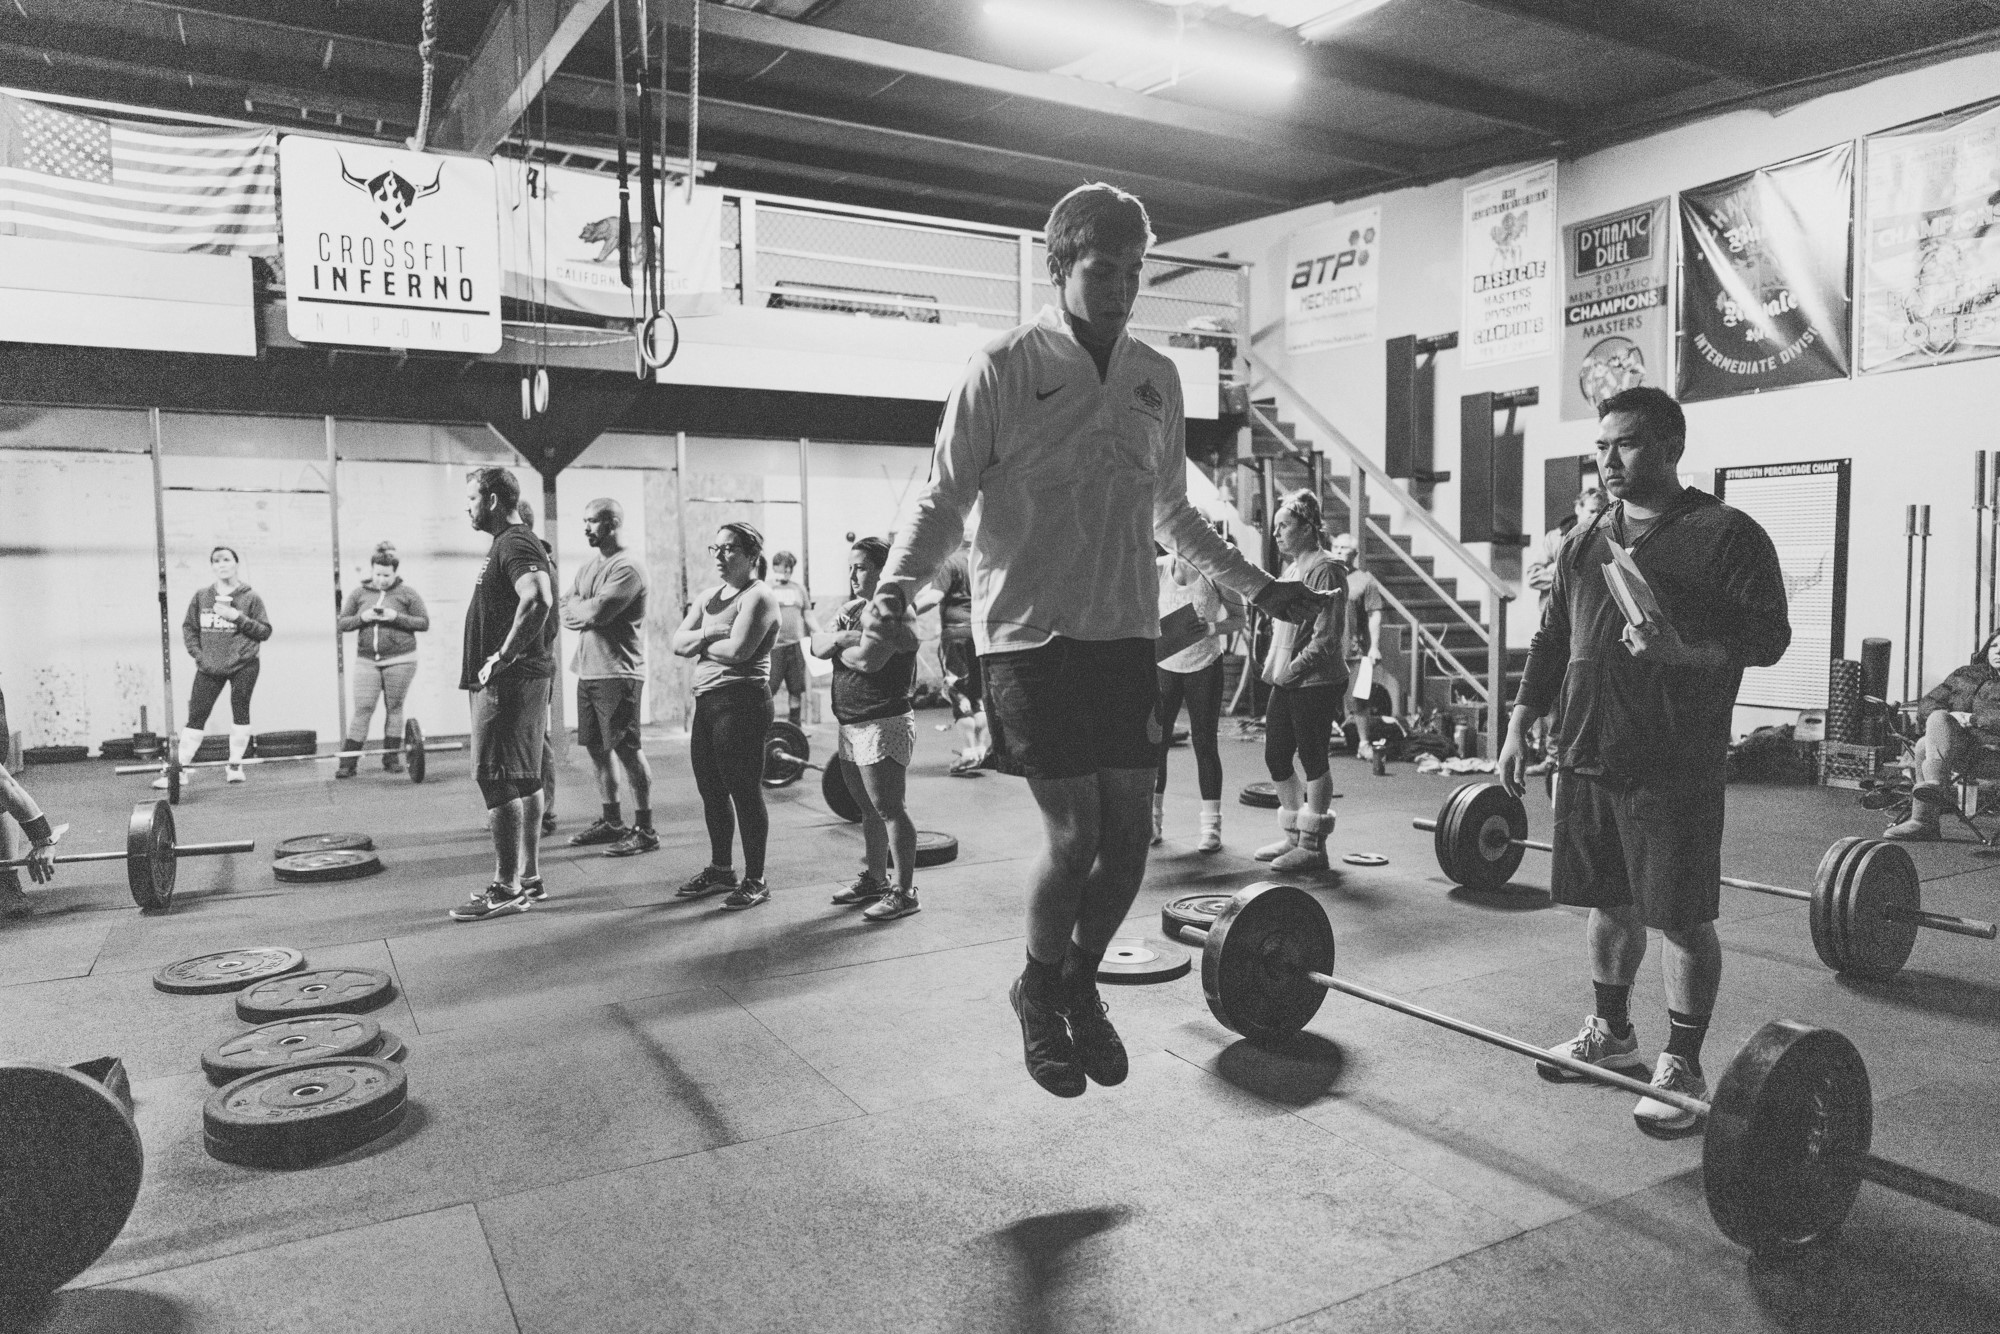 What is CrossFit? - Crossfit is constantly varied functional movements performed at high intensity. But what does that mean.... its a fitness regimen developed to prepare you for real life moments; from picking your child up off the floor to helping a stranger push their car to the side of the road. We blend a healthy mix of gymnastics, weightlifting, running, rowing and more. workouts are done in group sessions programmed to scale any ATHLETES fitness level.